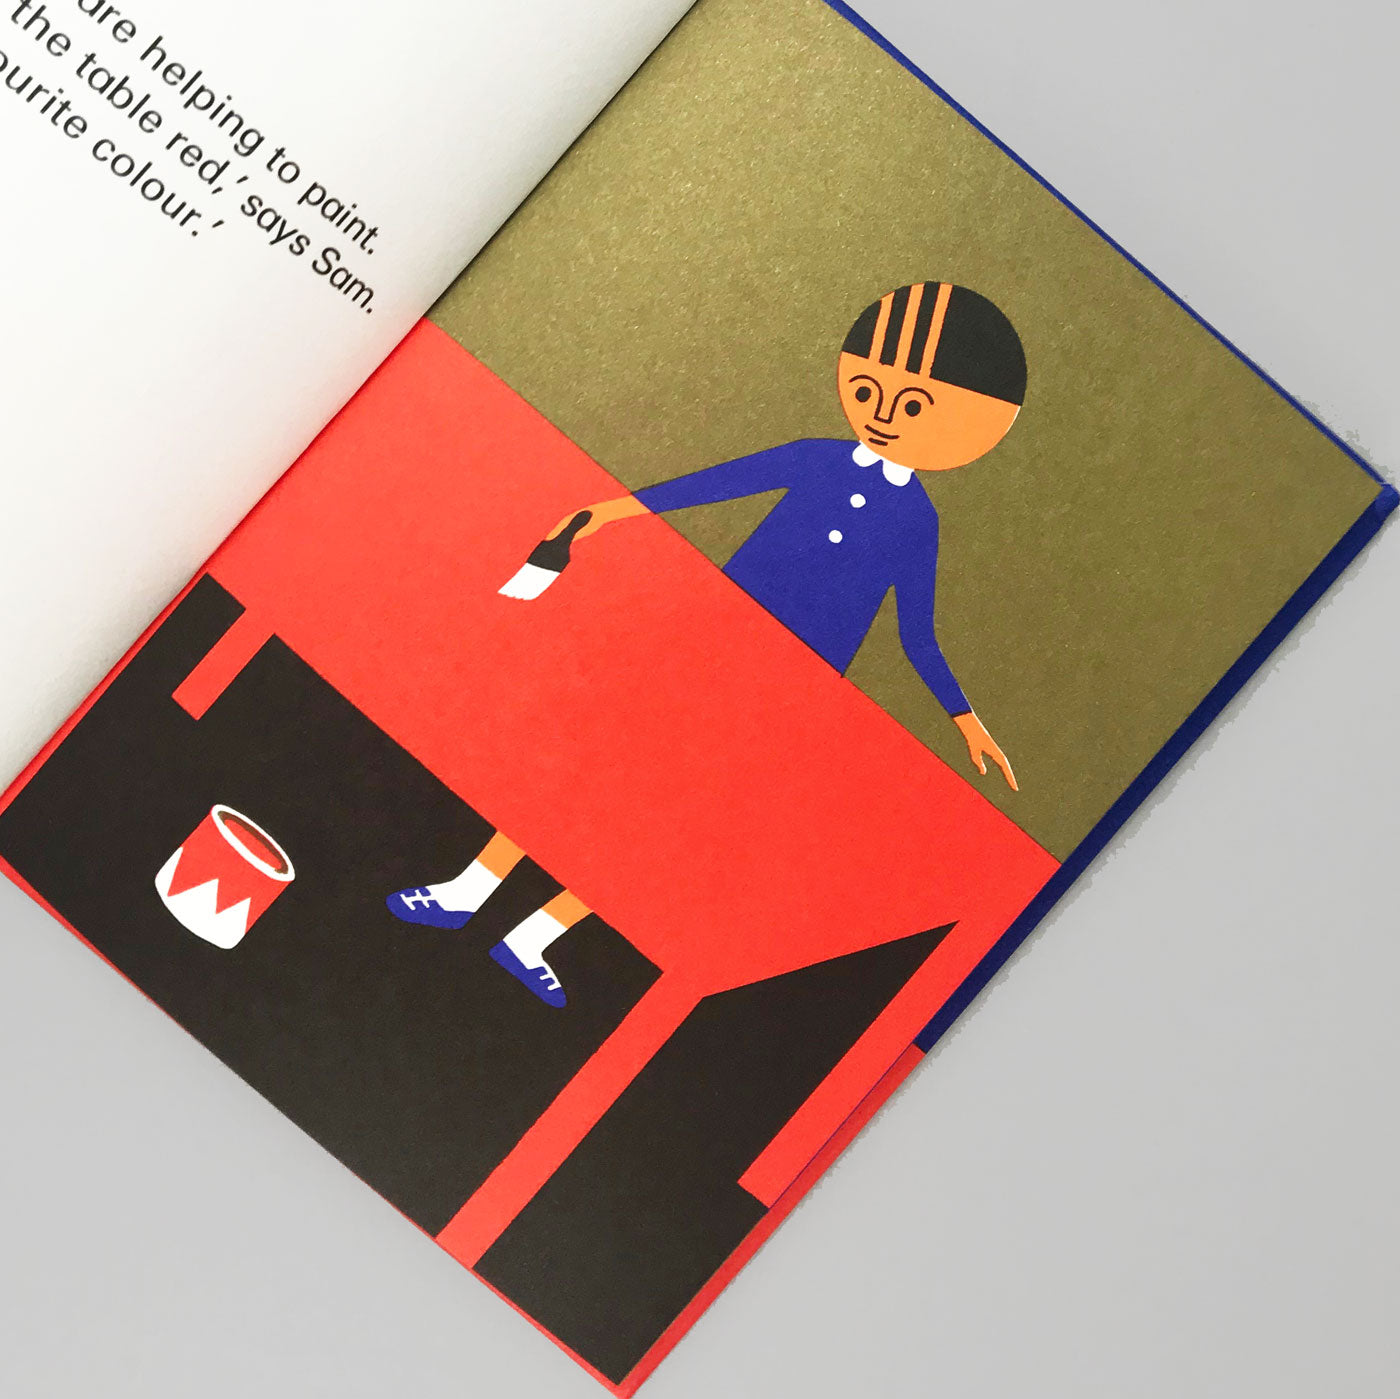 Singer and the Paint by Fredun Shapur